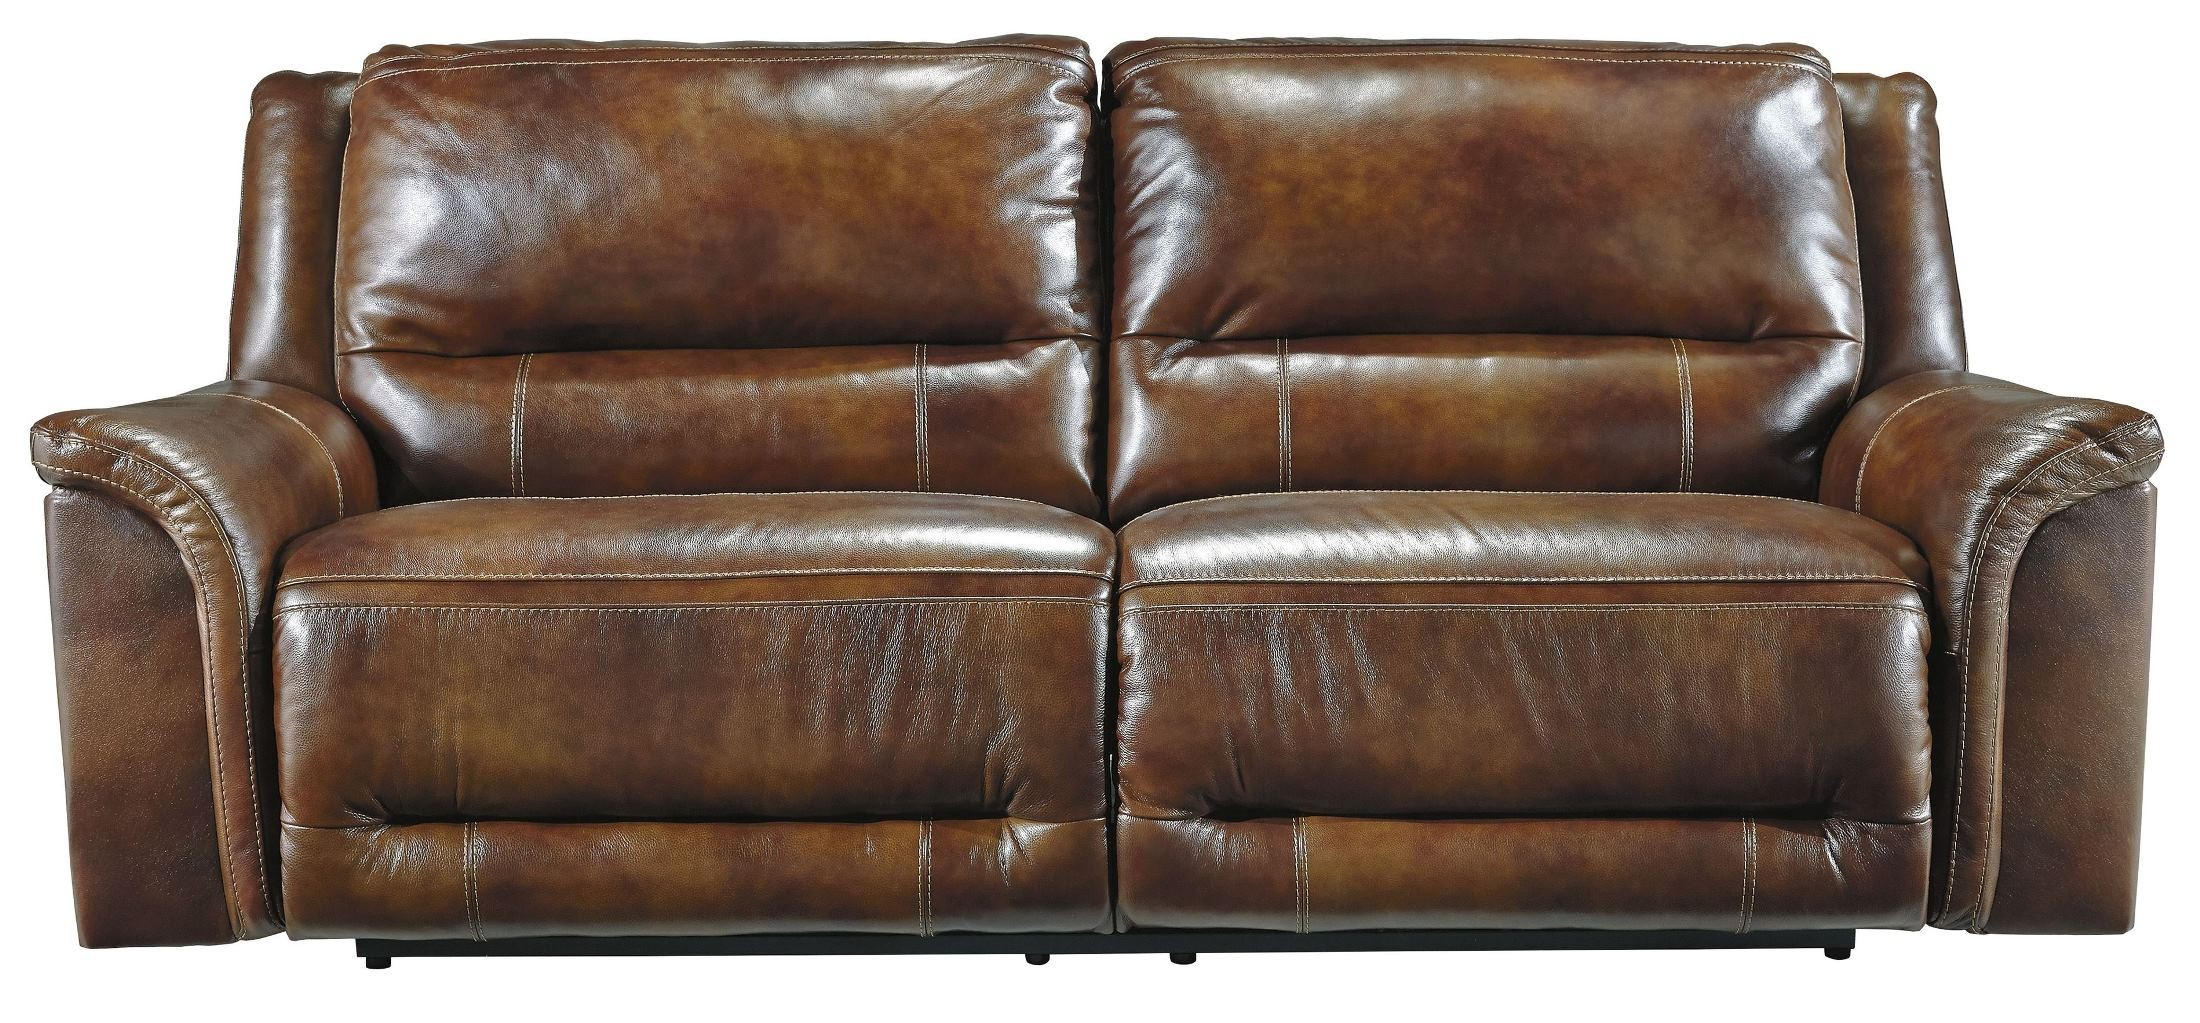 Jayron Harness 2 Seat Power Reclining Sofa from Ashley U